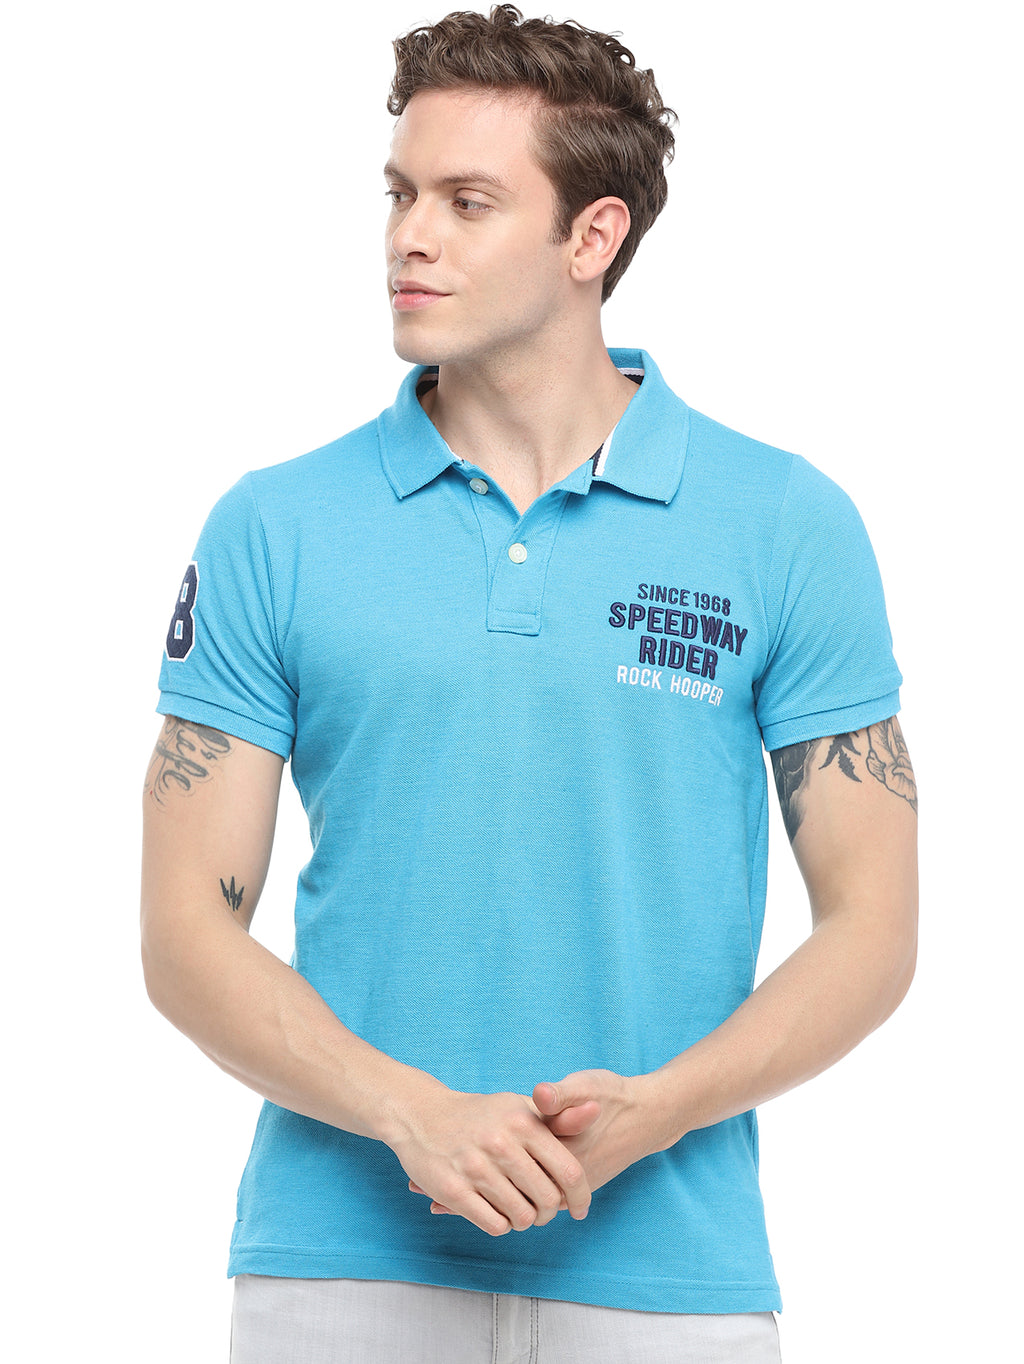 Rock Hooper Men's Solid Half sleeve Cotton Turquoise Melange Polo T-shirt